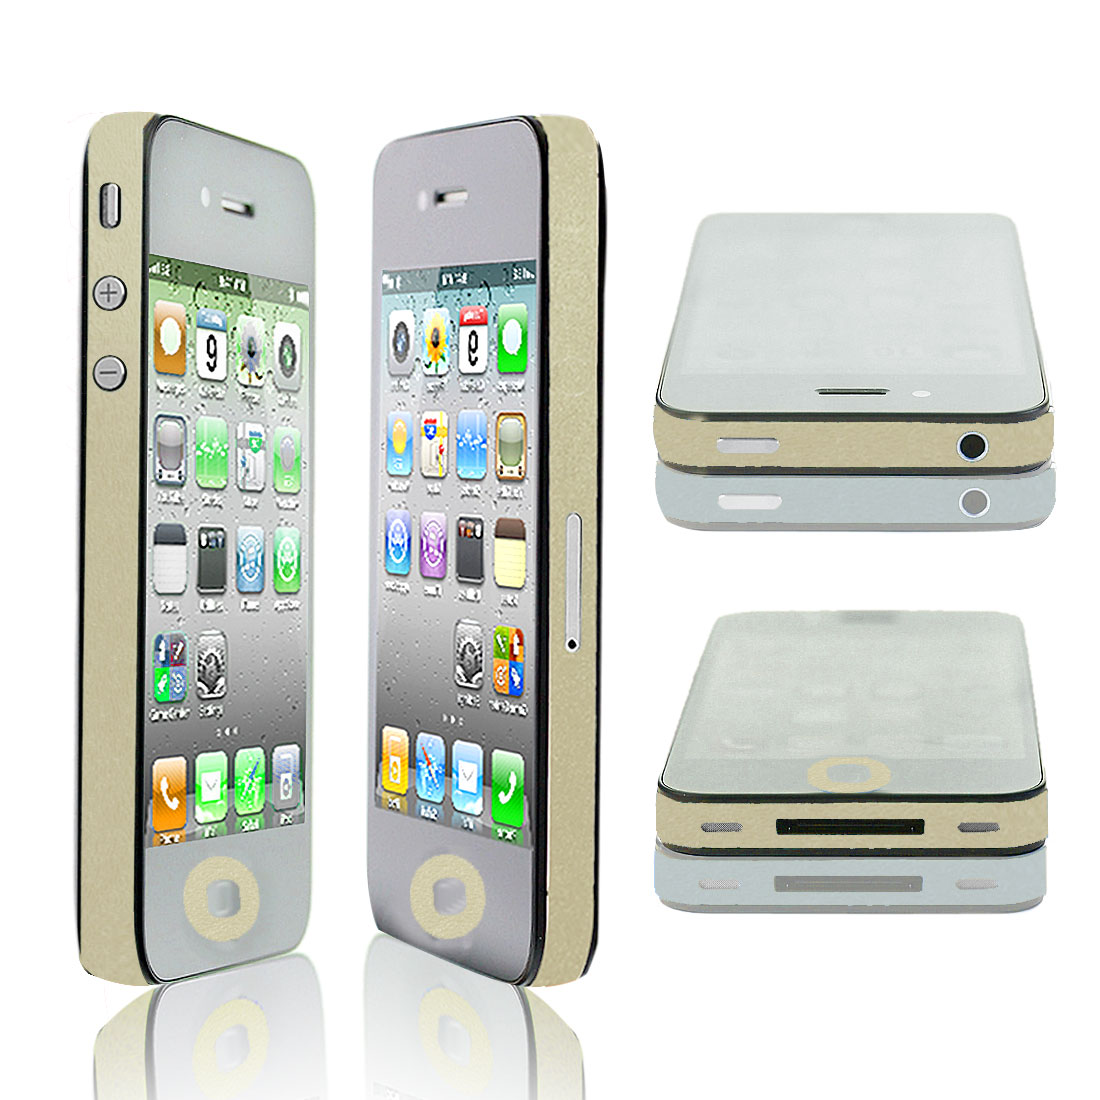 Unique Bargains Glitter Pale Yellow Vinyl Edge Wrap Decal Skin Sticker for iPhone 4 4G 4S 4GS